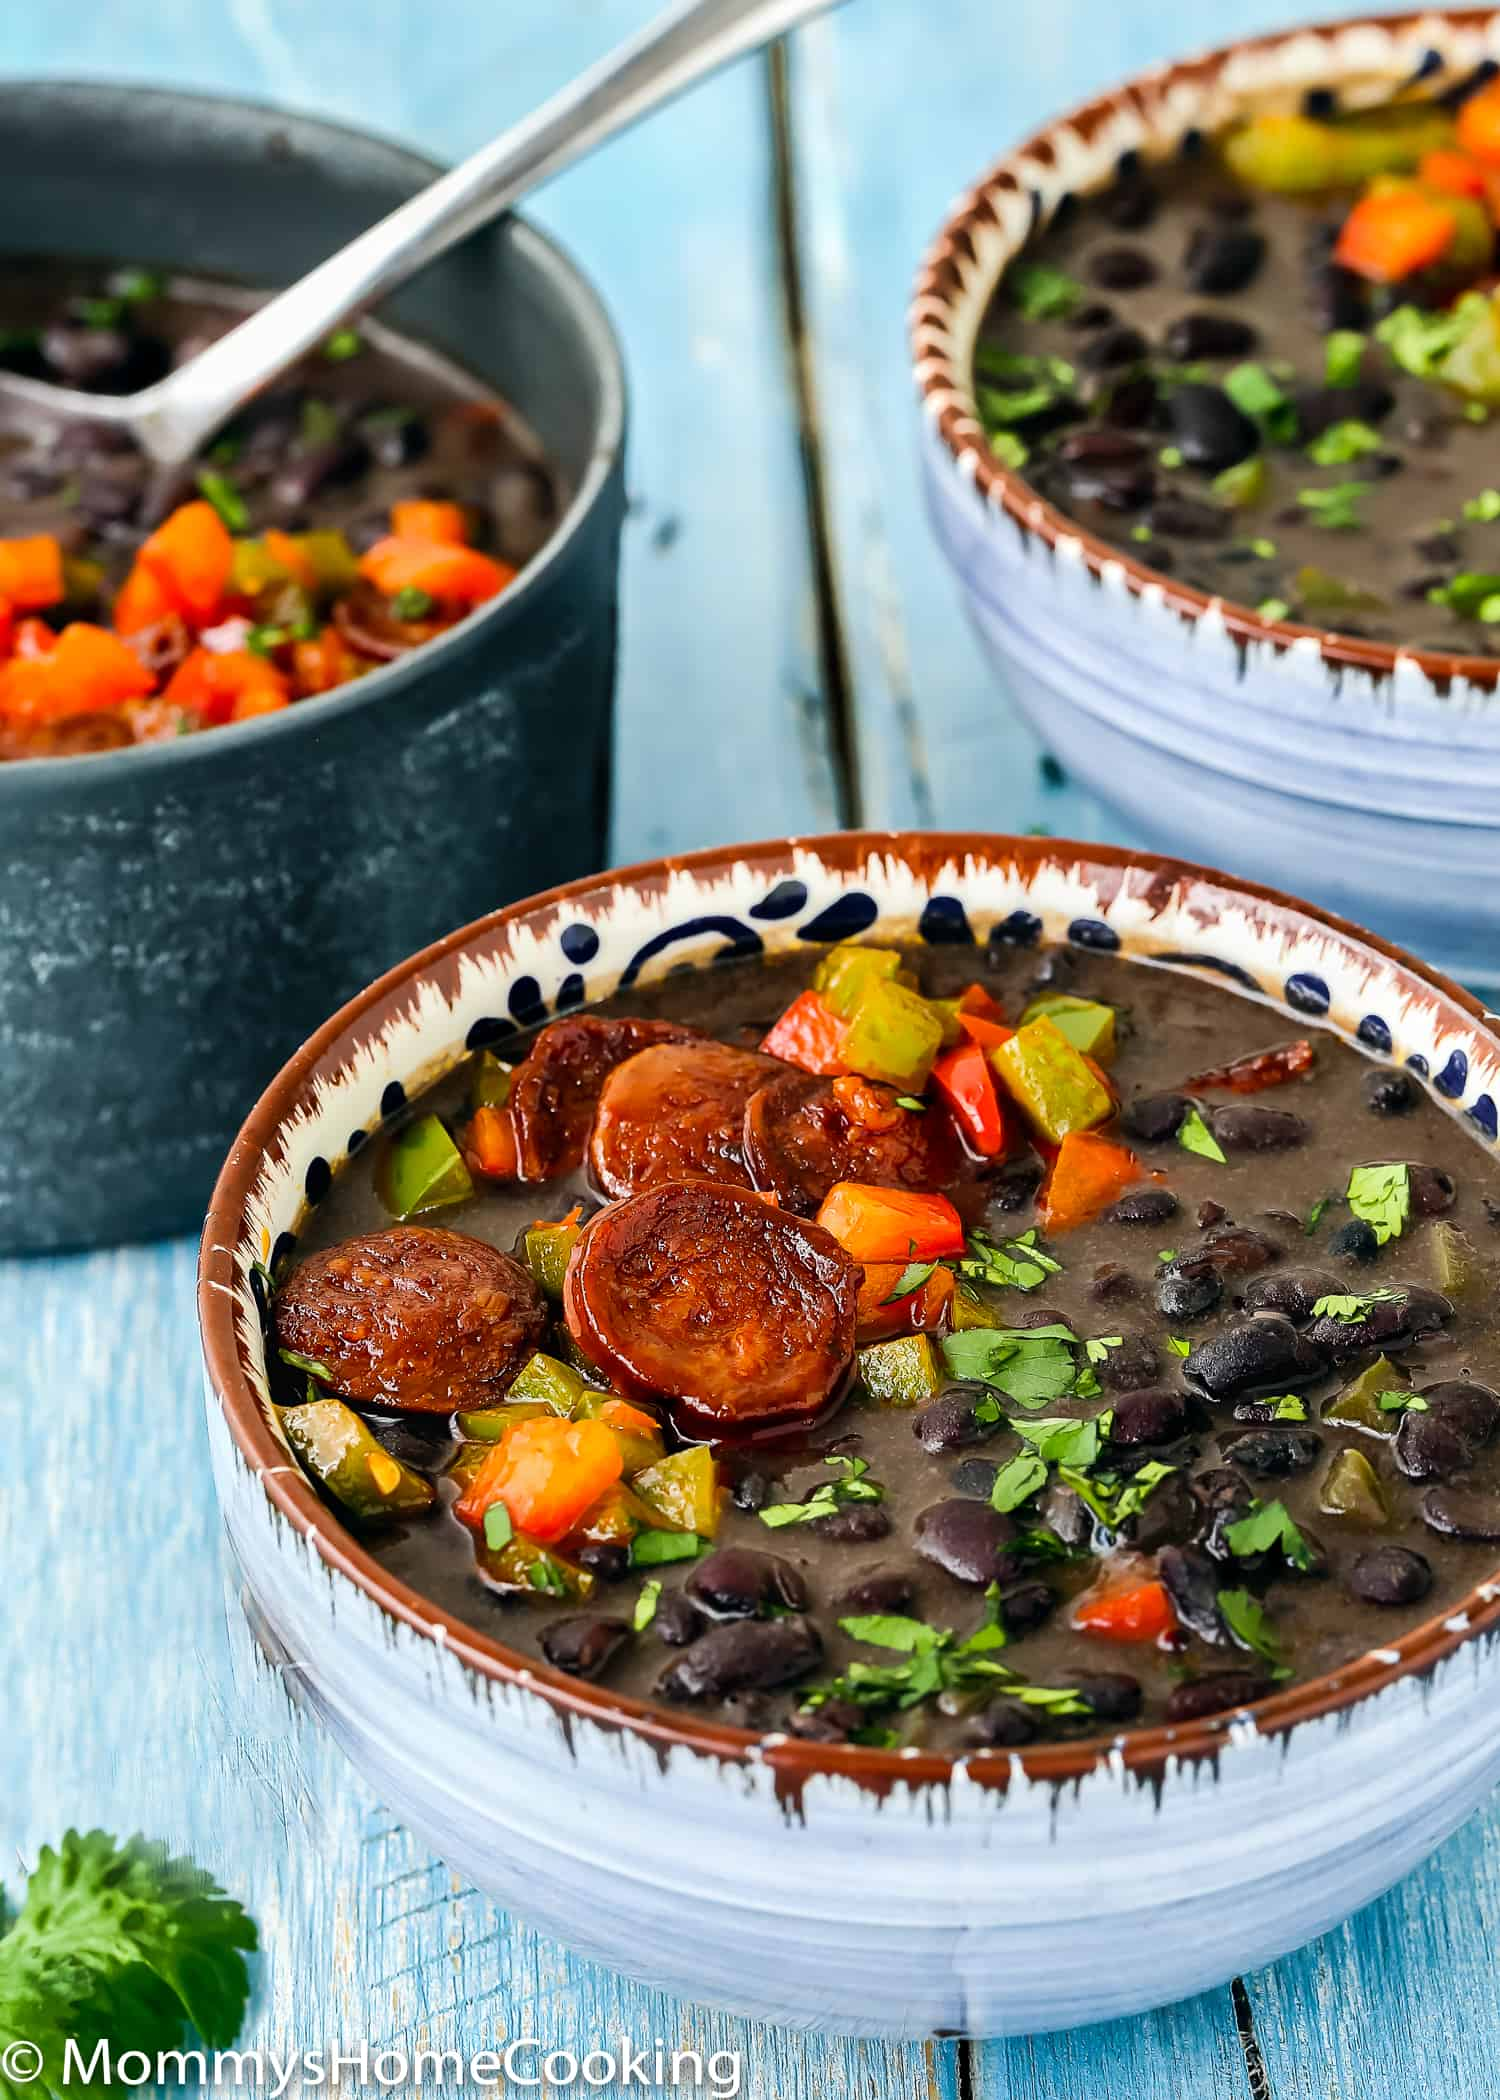 These Instant Pot Black Beans with Chorizo are hearty, satisfying and incredibly flavorful! They're quick and easy to make and perfect for feeding a crowd. Serve them on their own, or as a side dish to complete any meal. https://mommyshomecooking.com